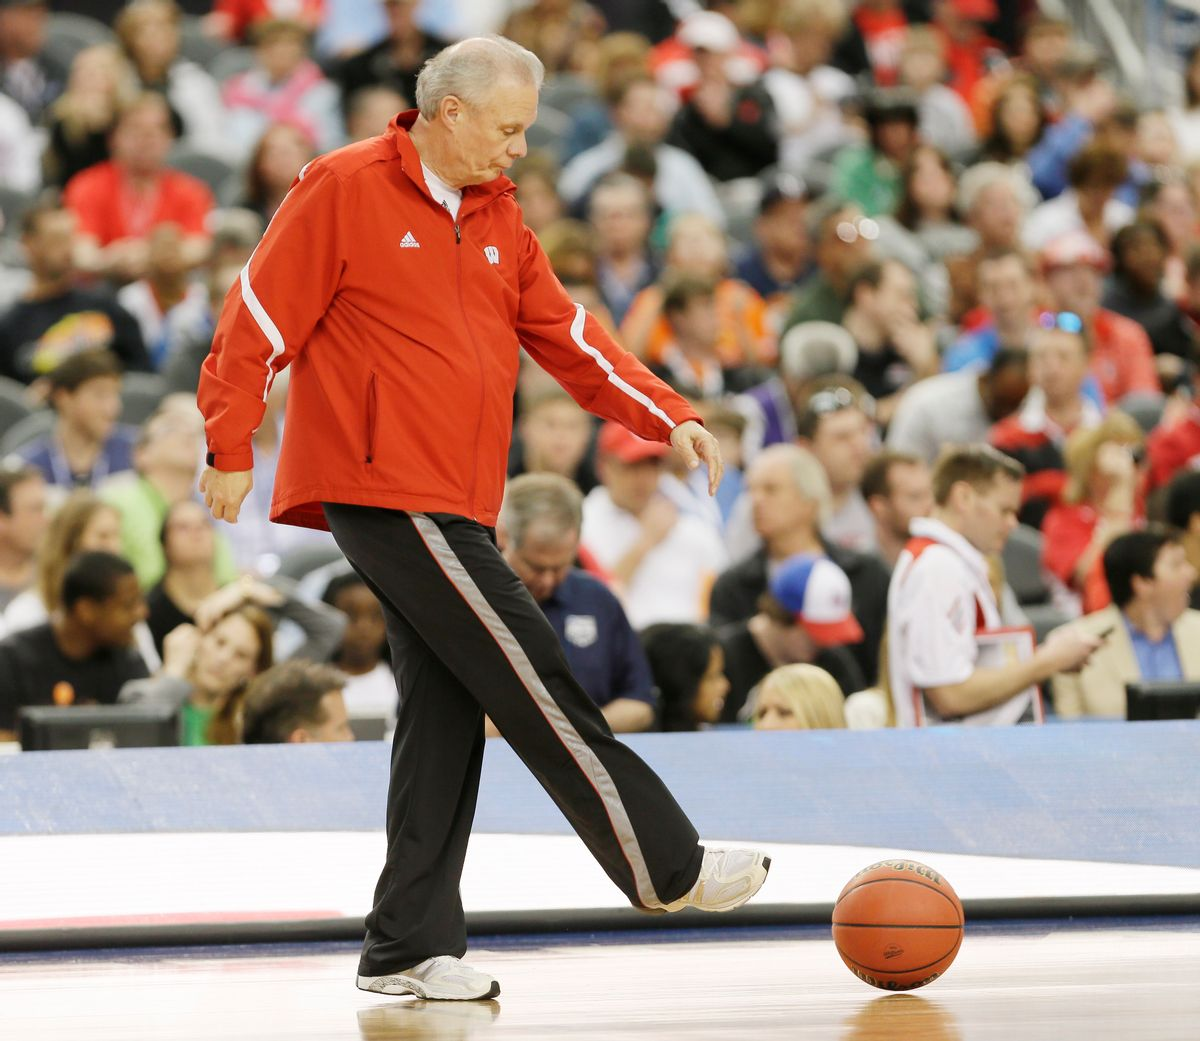 Wisconsin head coach Bo Ryan clears a ball from the floor during practice for an NCAA Final Four tournament college basketball semifinal game Friday, April 4, 2014, in Dallas. Wisconsin plays Kentucky on Saturday, April 5, 2014. (AP Photo/Charlie Neibergall) (Charlie Neibergall)